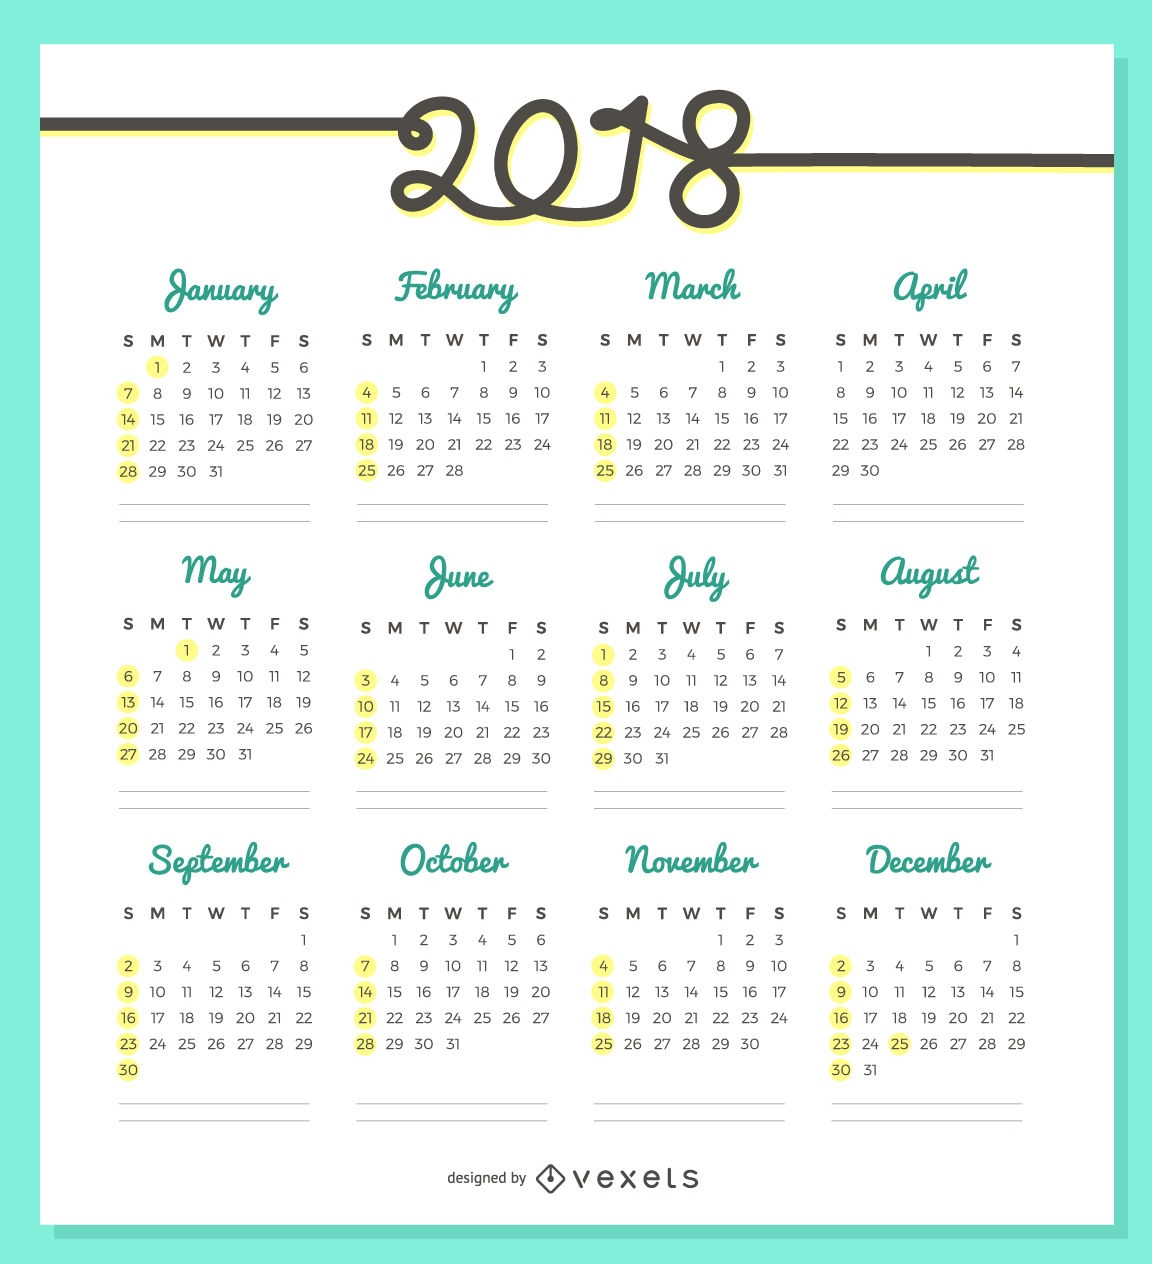 delicate 2018 calendar design vector download Calendar 2018 Design erdferdf